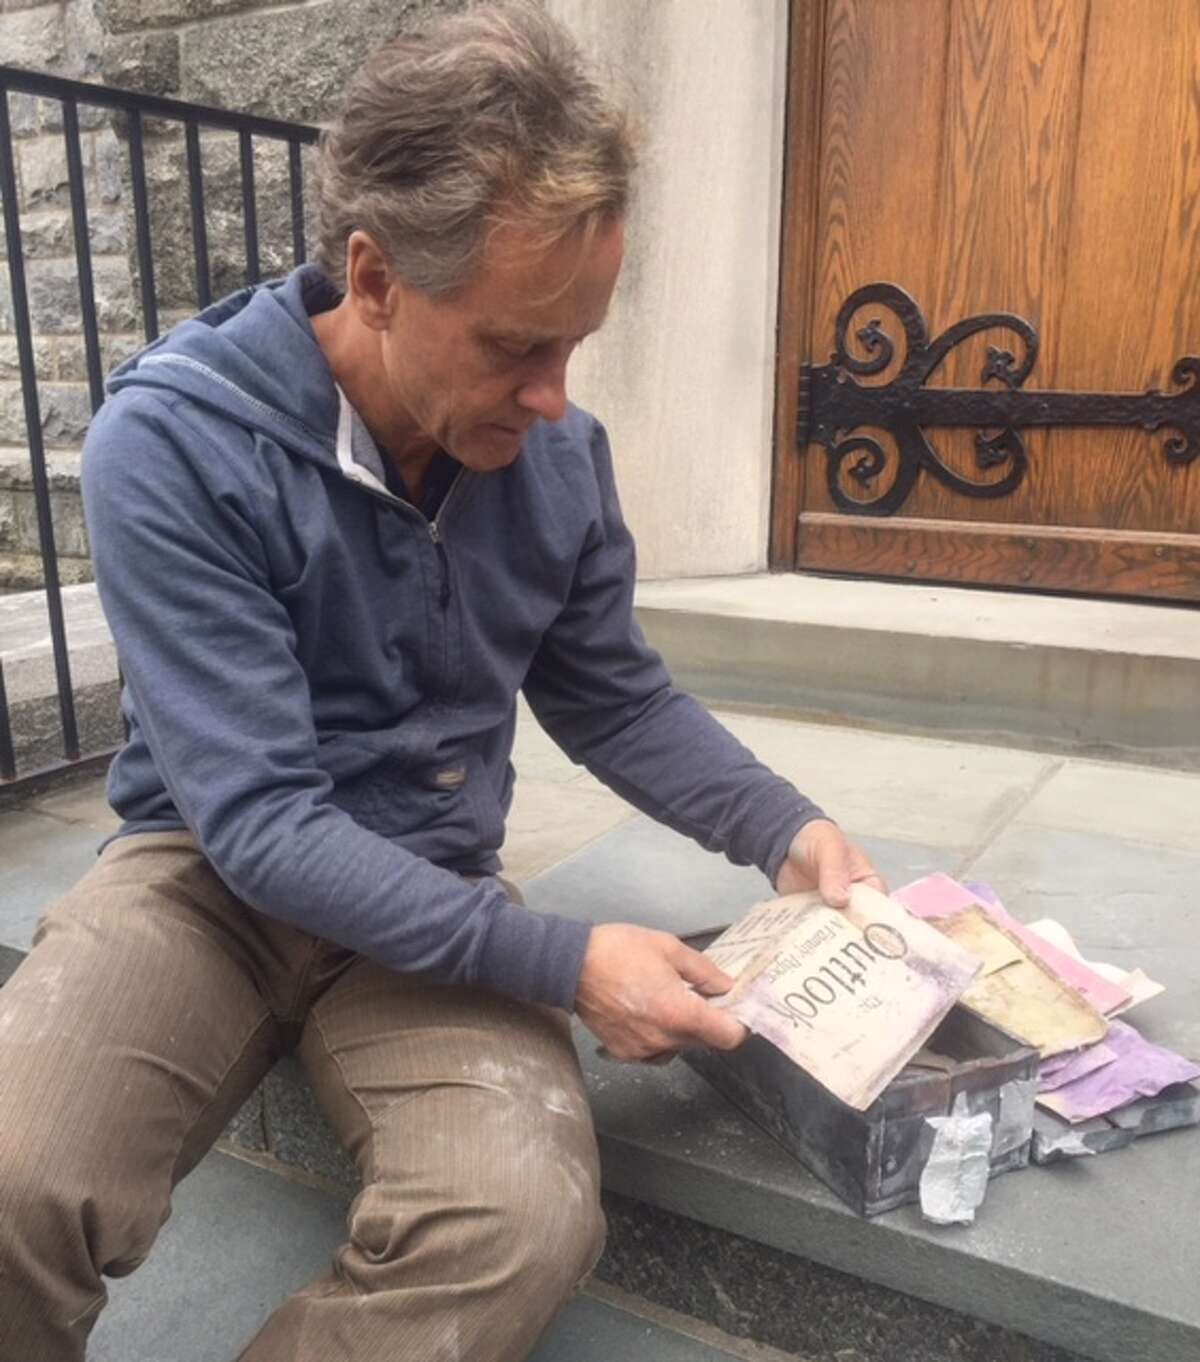 The Rev. Richard S. DenUyl, Jr., the church pastor at First Congregational Church of Greenwich, takes a glimpse into the past after an old time capsule was retrieved.